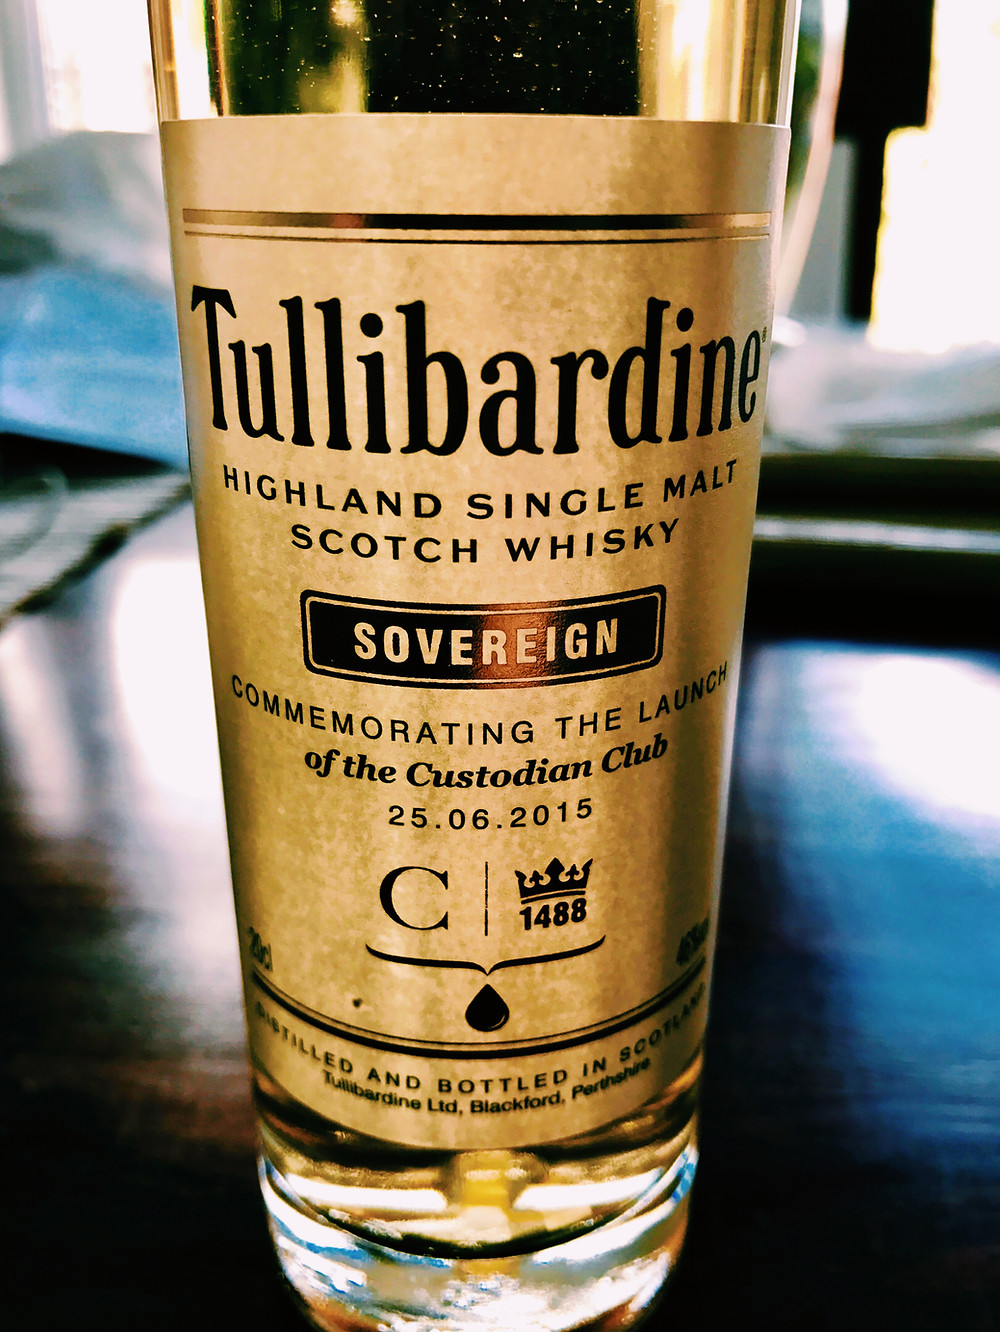 Tullibardine single malt scotch